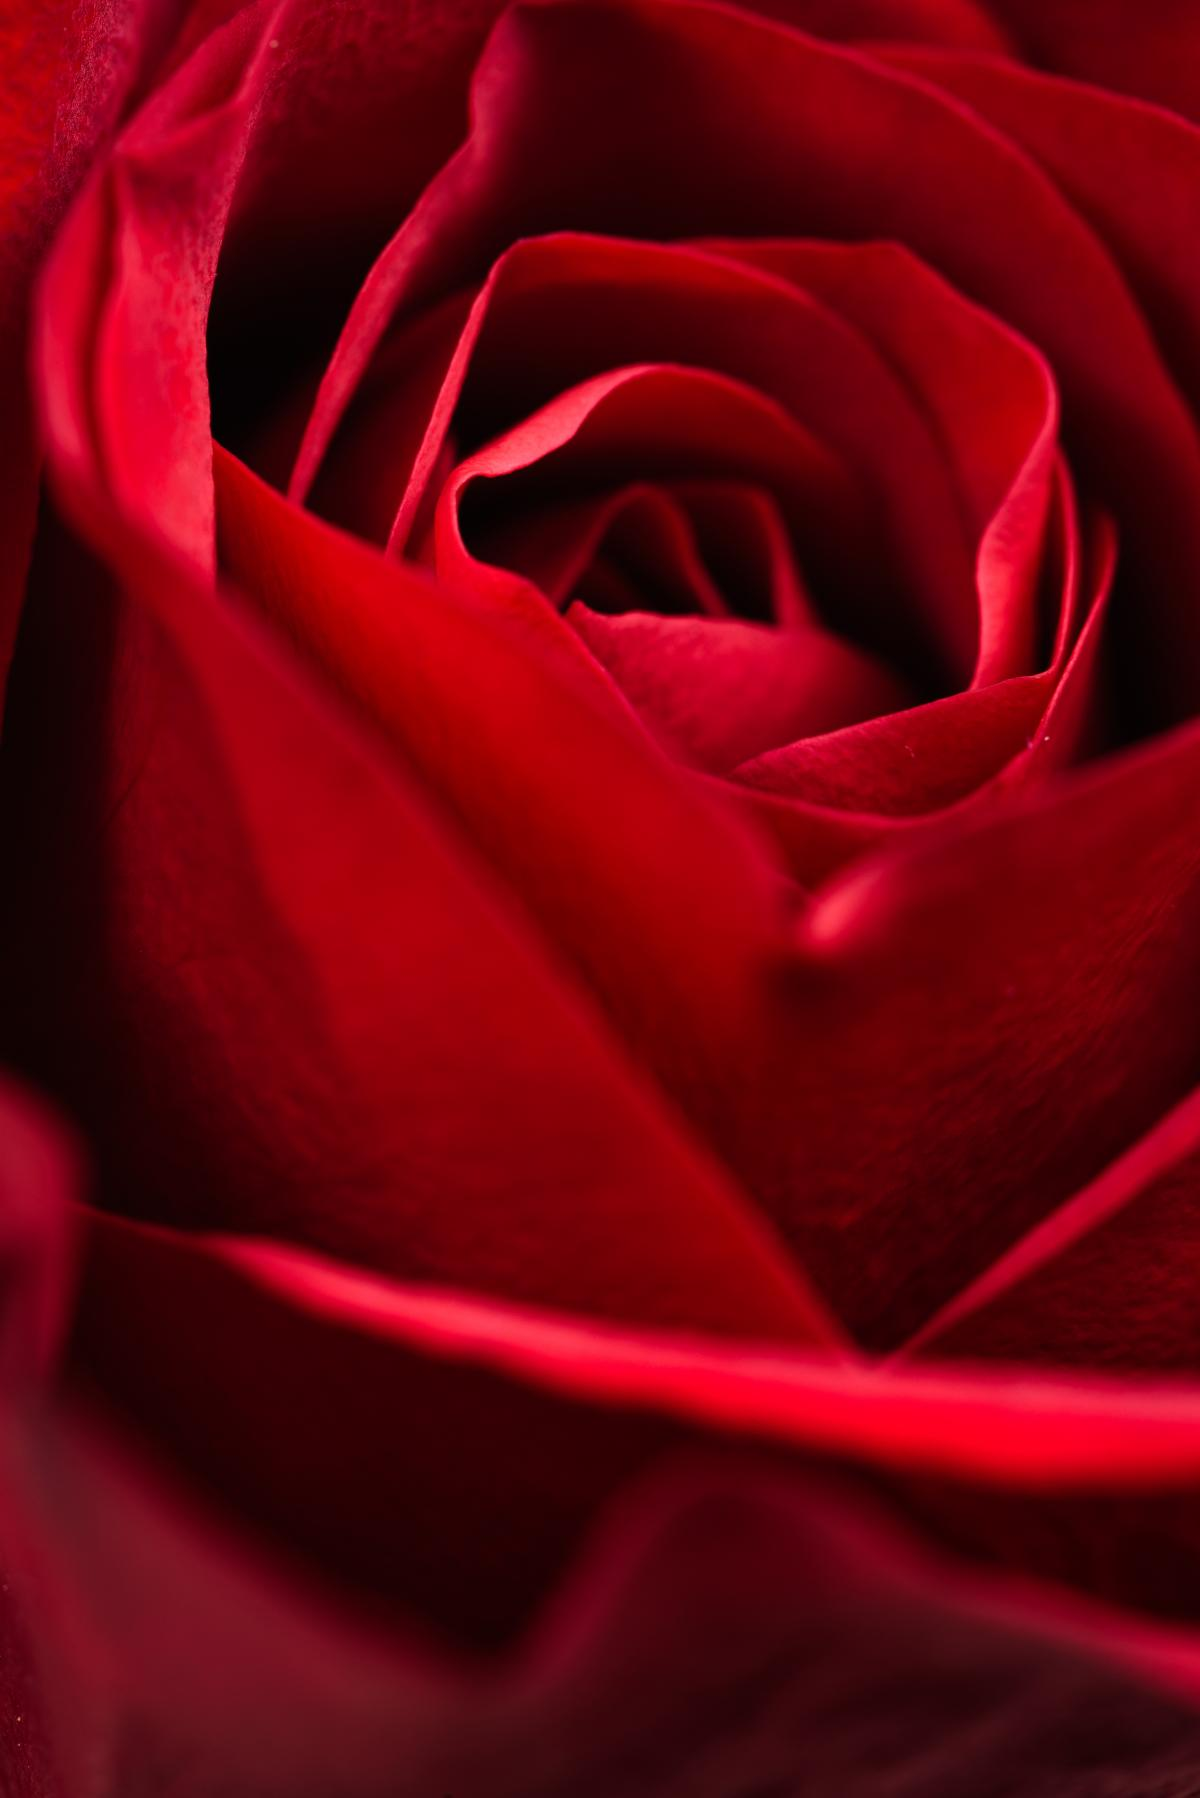 Red Rose Macro Free Photo #423104